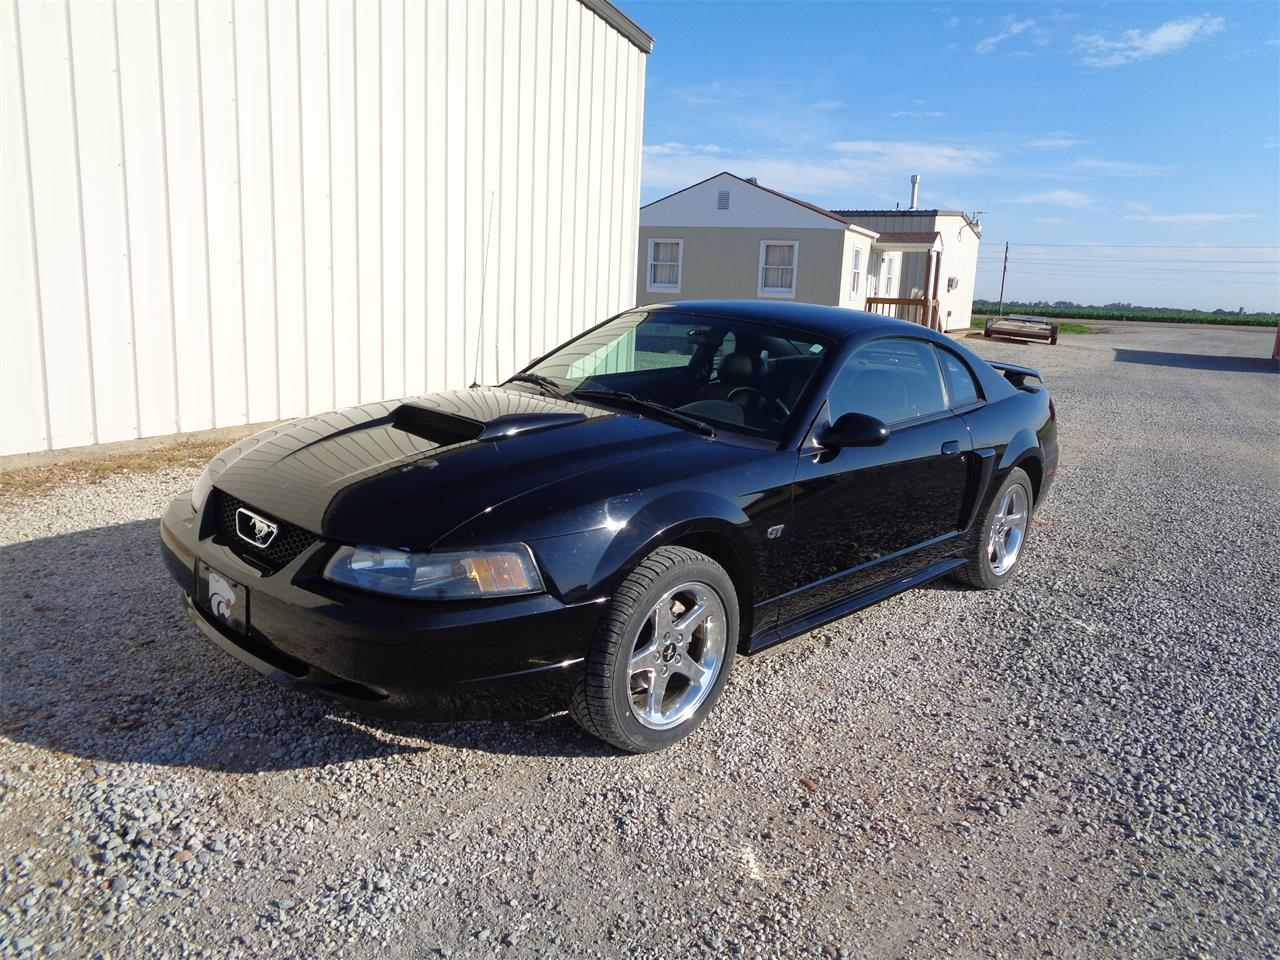 Large picture of 03 mustang gt lscp